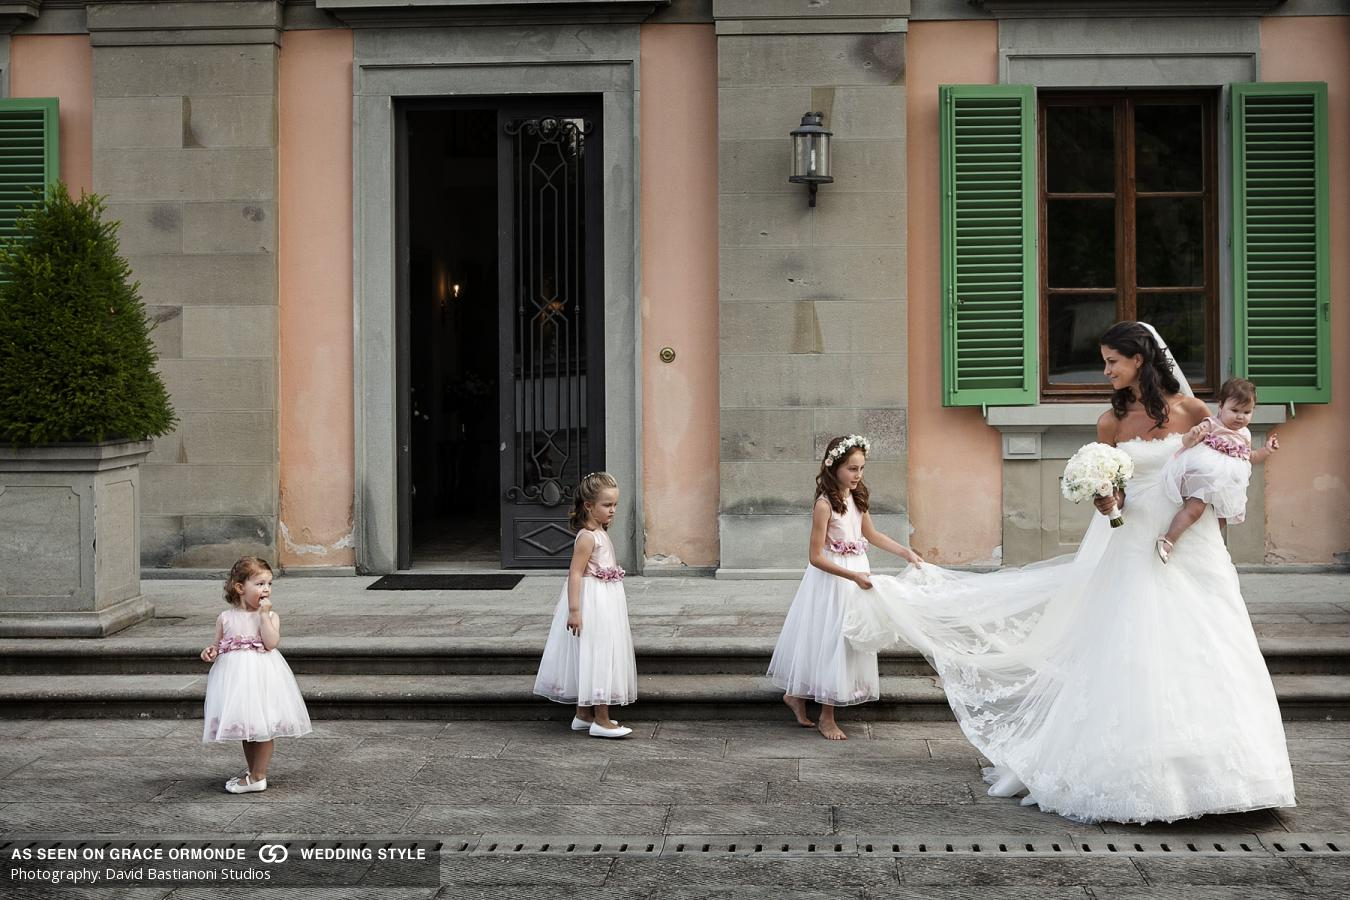 david-bastianoni-wedding-2015-04_1 :: Grace Ormonde :: Luxury wedding photography - 1 :: david-bastianoni-wedding-2015-04_1